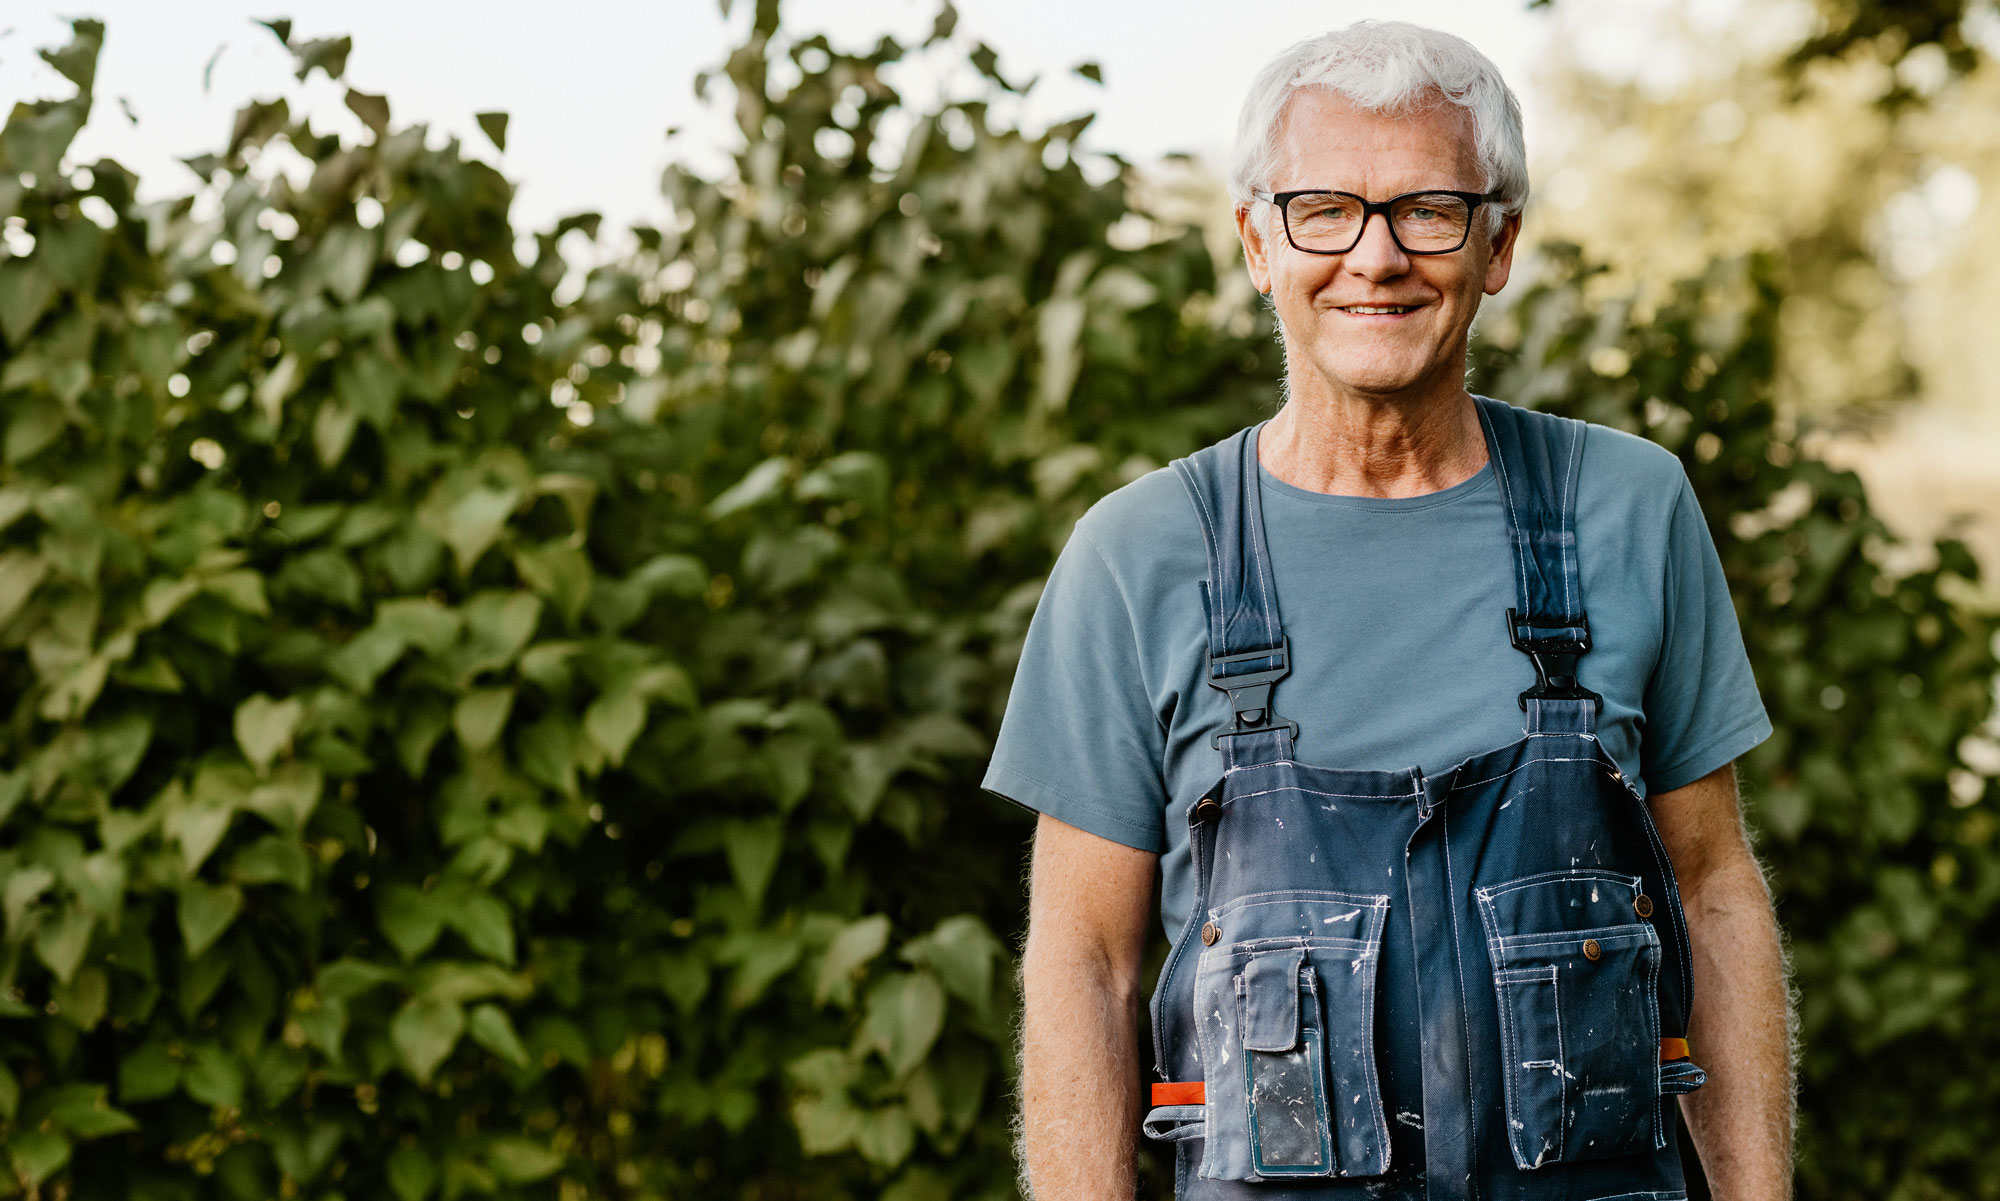 Older man outdoors in overalls